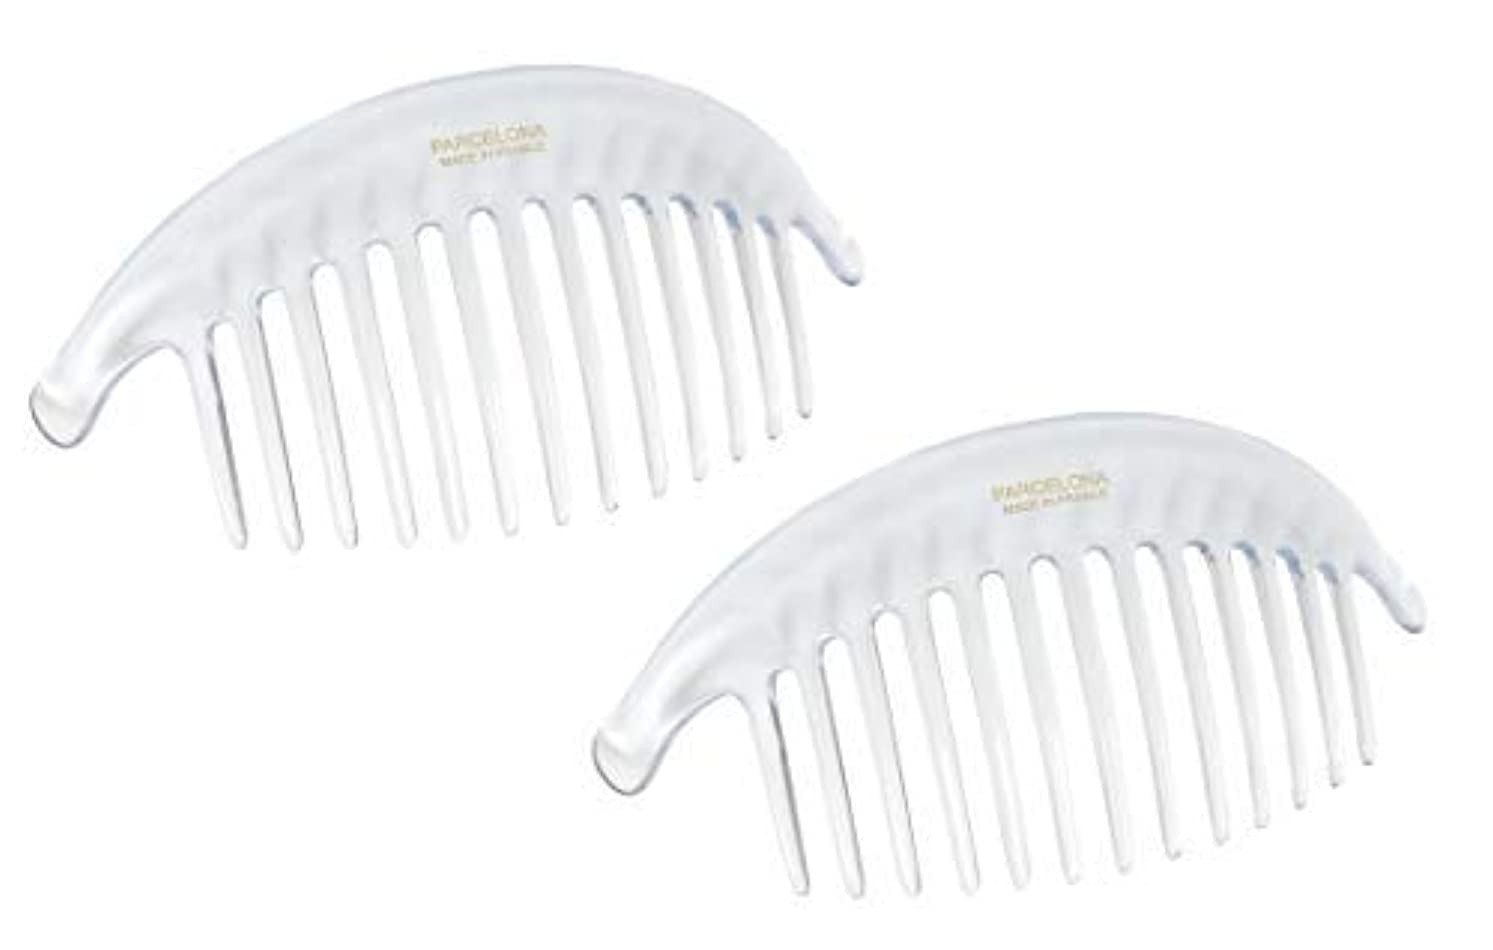 バーガーために雲Parcelona French Alice Large Set of 2 Clear 13 Teeth Celluloid Acetate Interlocking Side Hair Combs [並行輸入品]